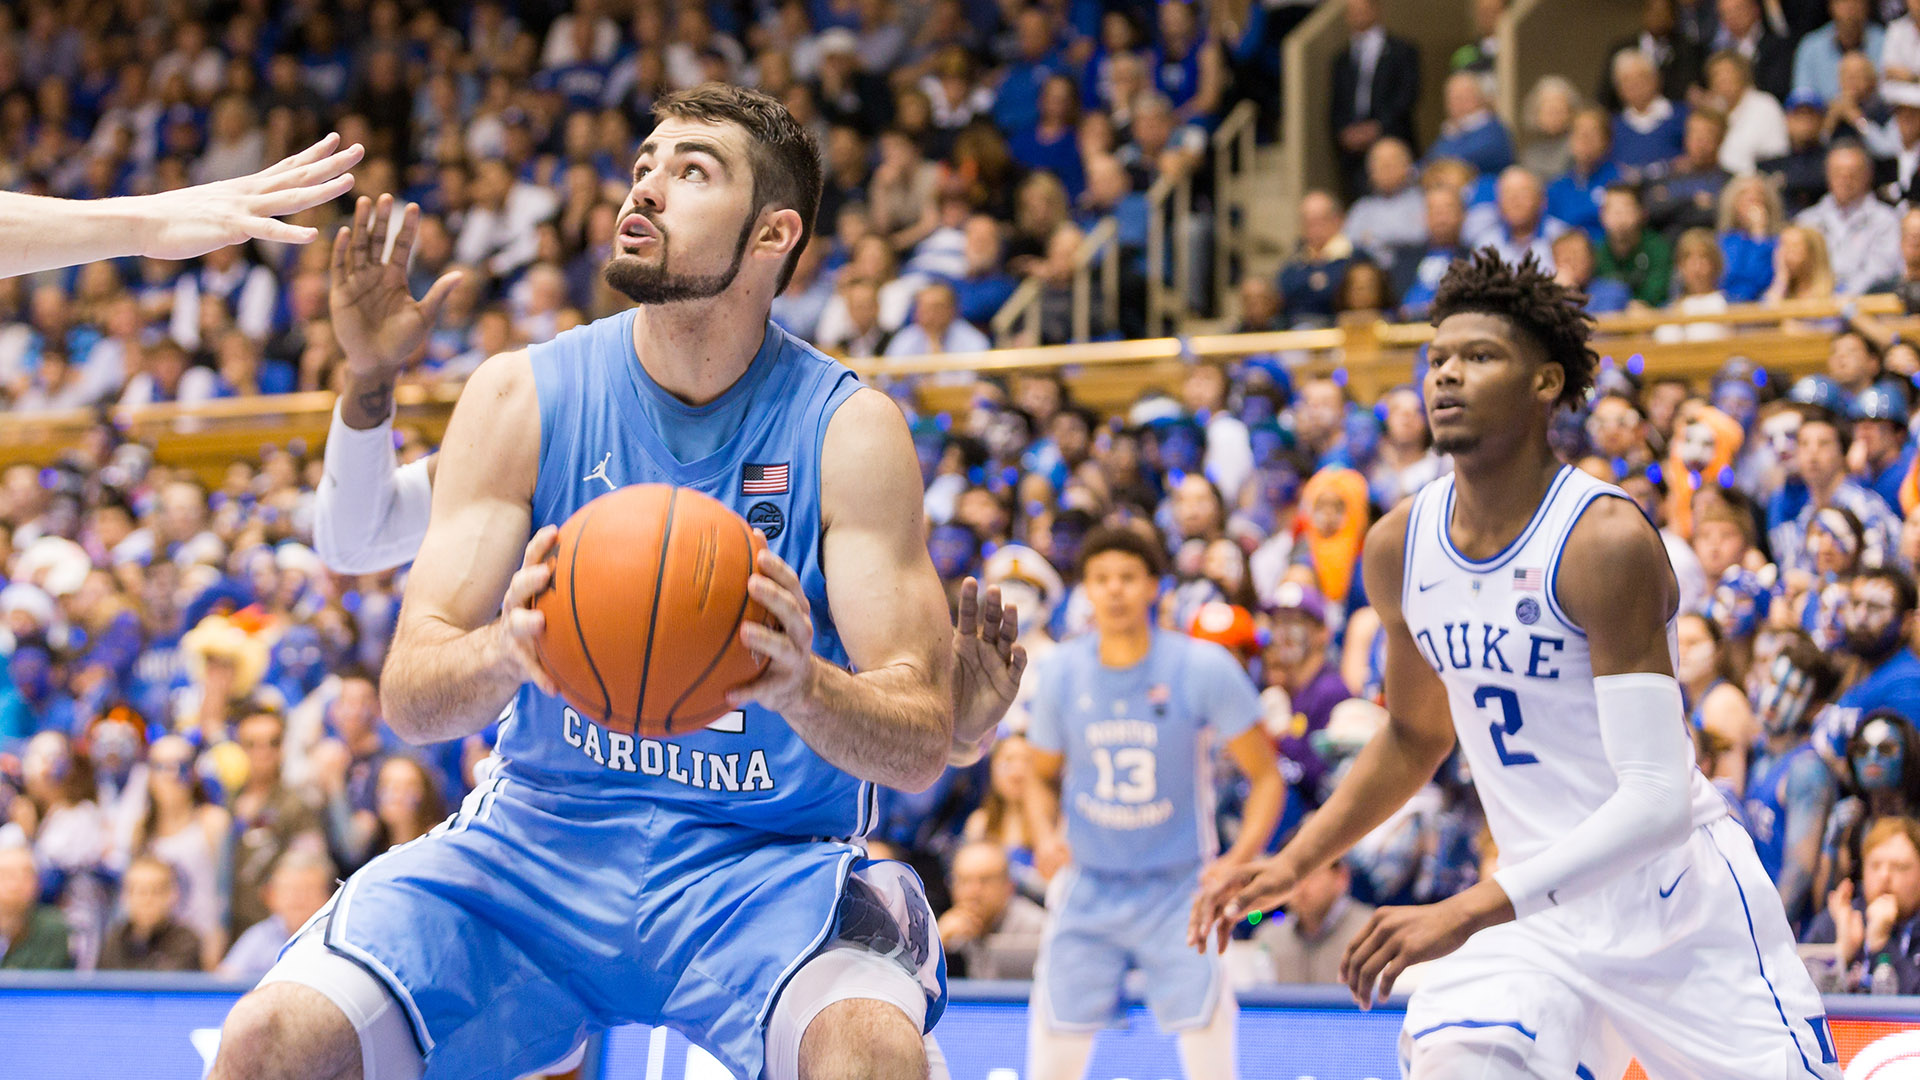 Luke Maye turned may develop into he can